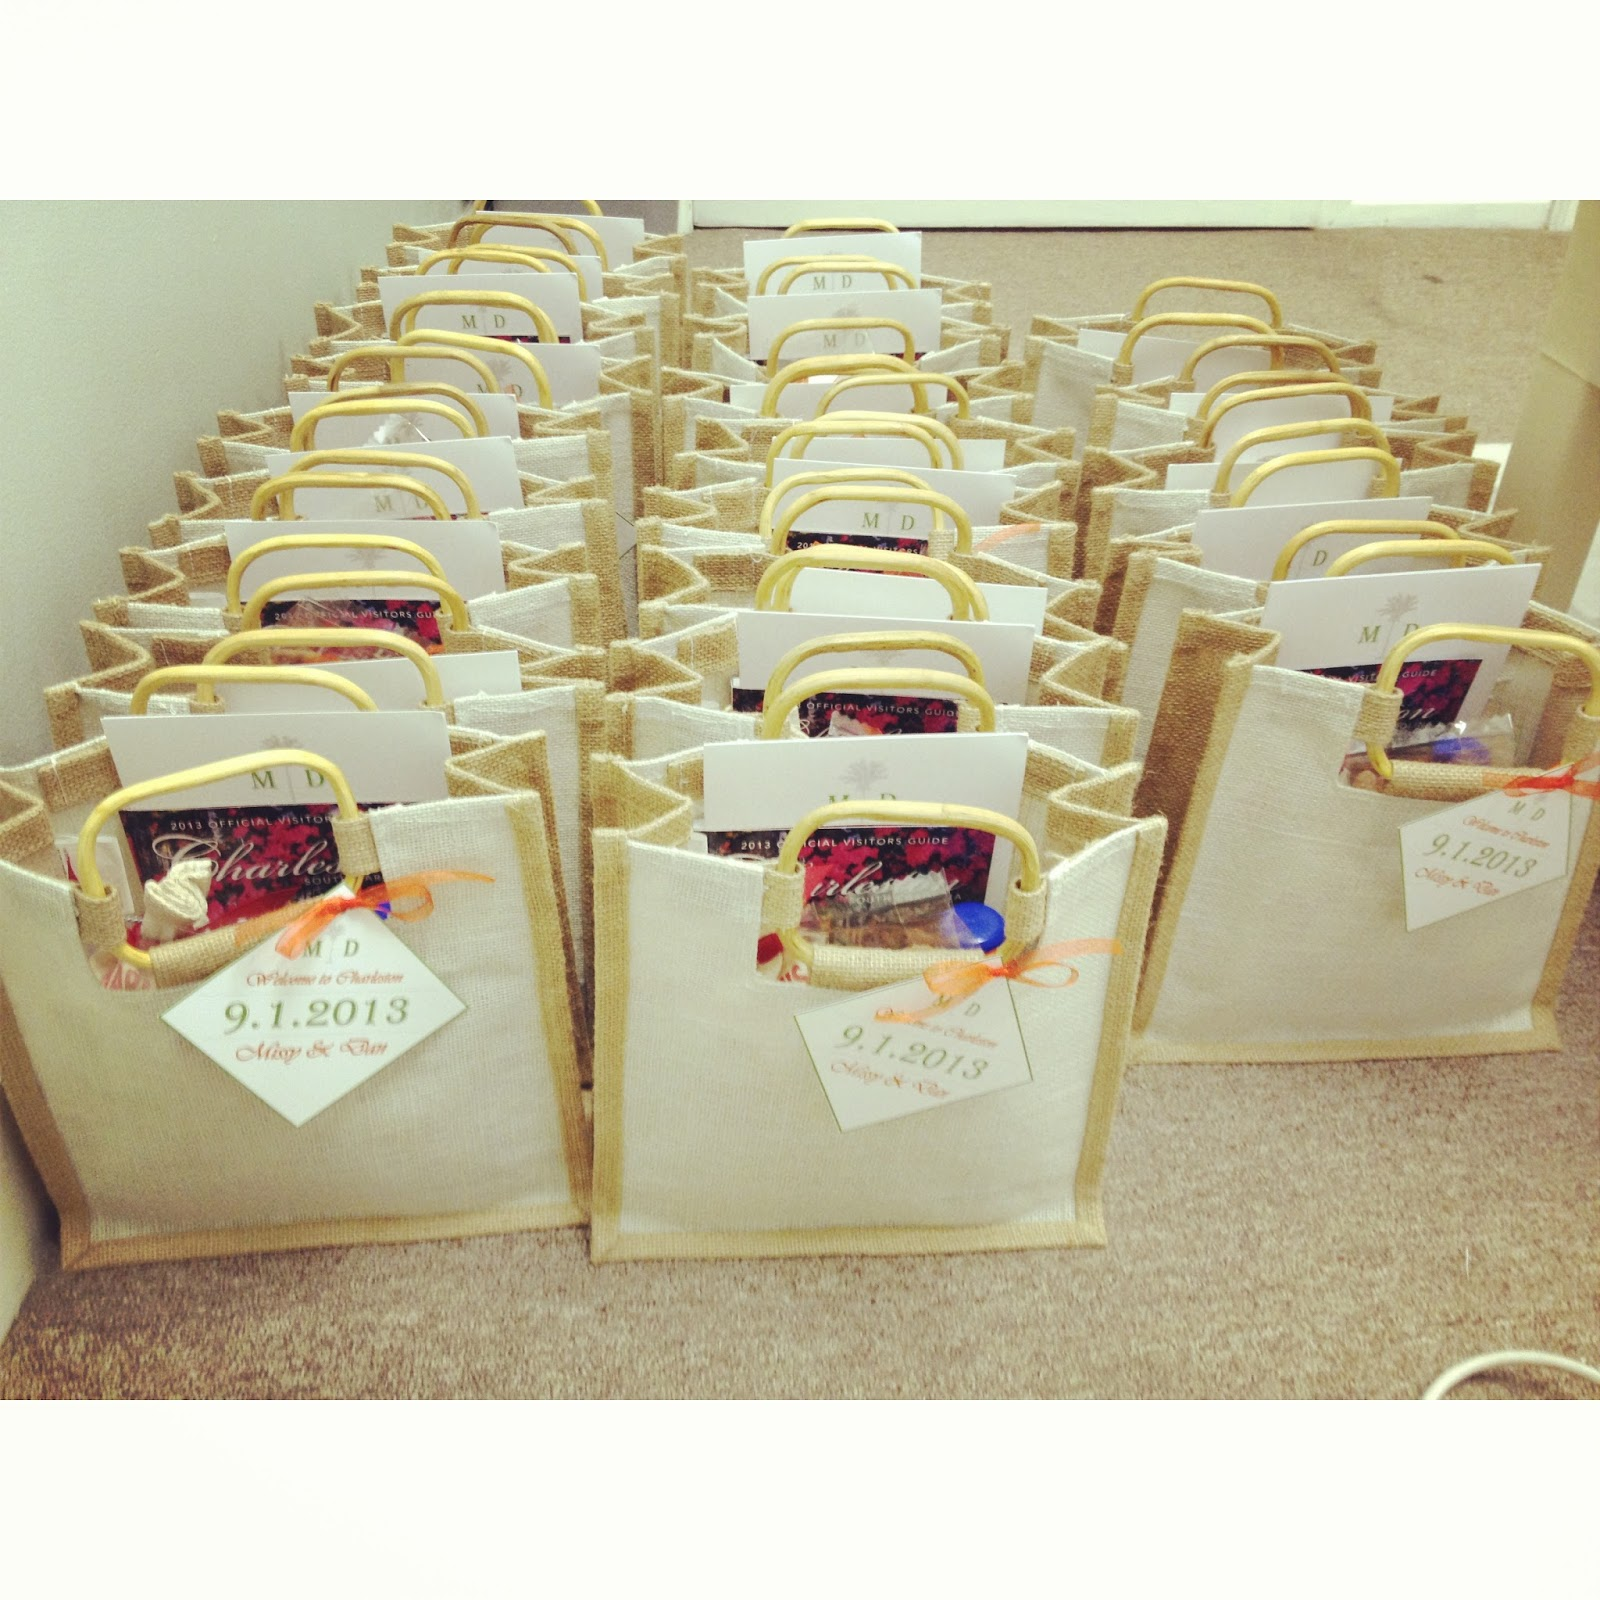 Welcome To Our Wedding Weekend Gift Bags: The How To On Welcome Bags!